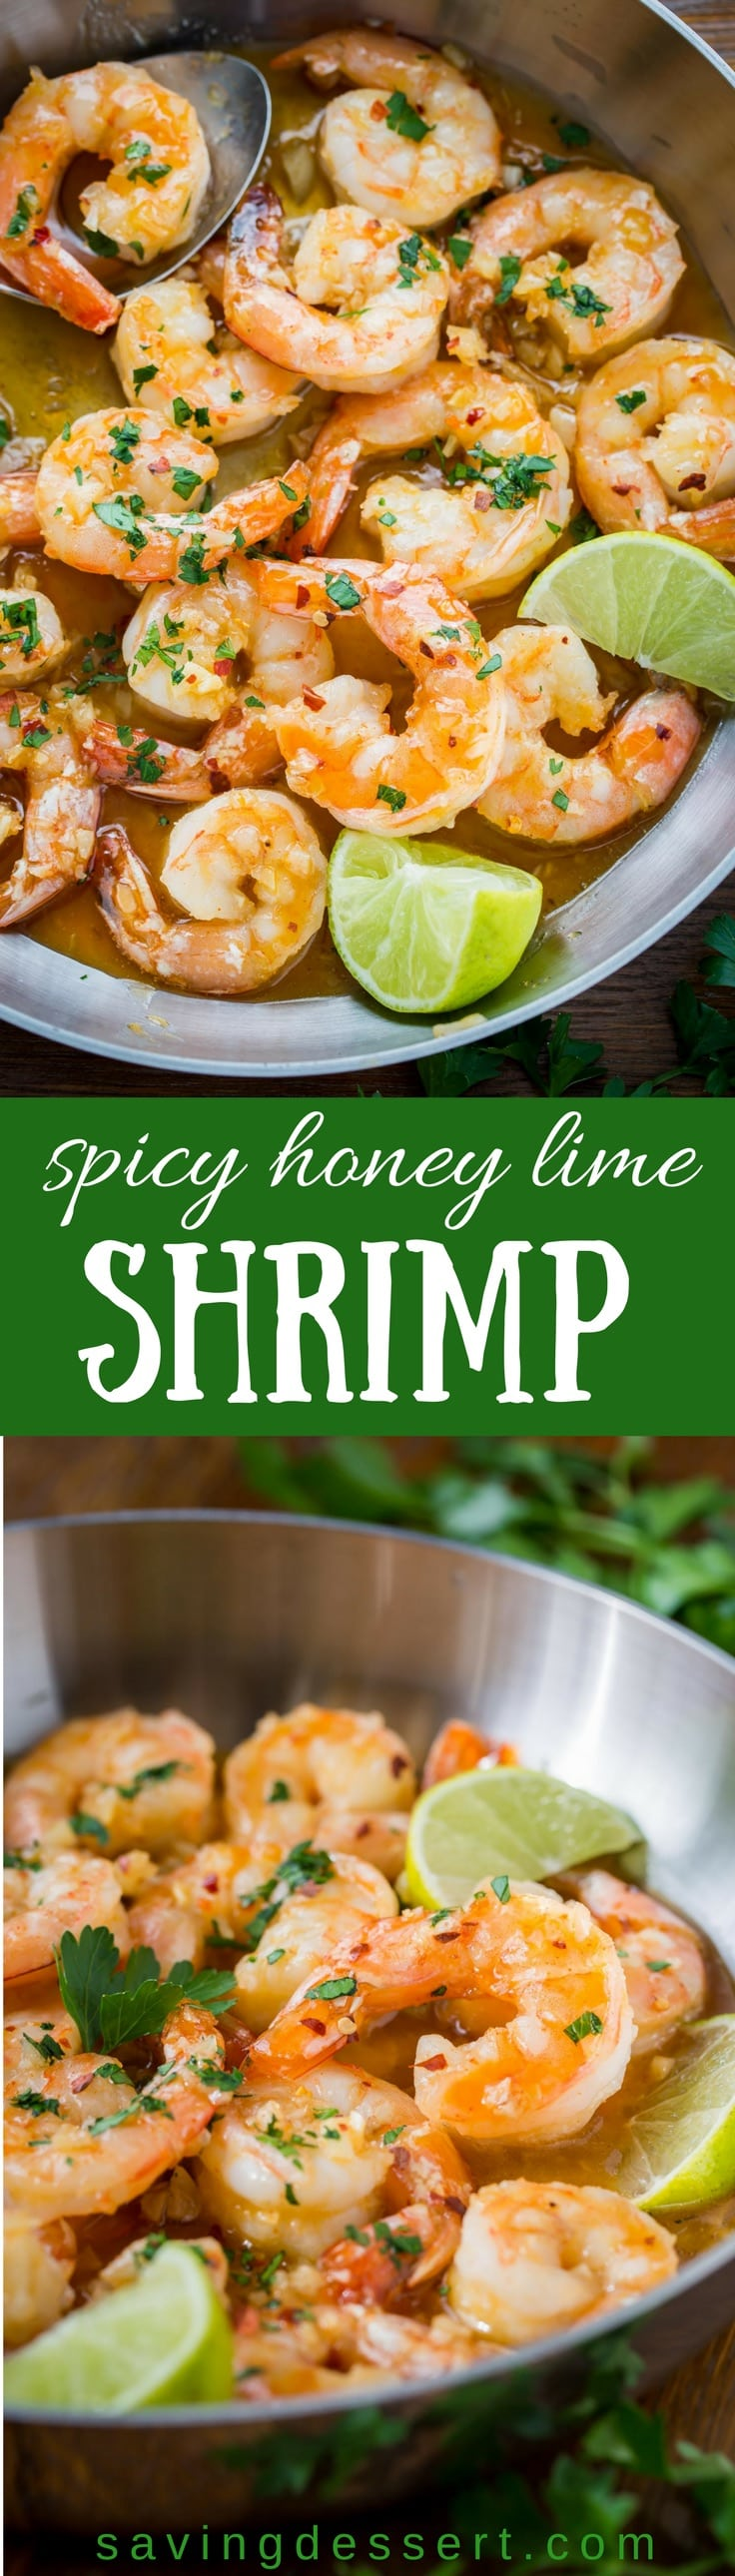 Spicy Honey Lime Shrimp - 15 minutes is all you need to bring this delicious, sweet-tart and spicy shrimp to the table! With a fabulous combination of sweet honey, tart fresh lime juice, and garlic with just a little heat from the dry Sriracha seasoning. Be sure to serve the shrimp over pasta or rice so you don't miss one drop of this amazing sauce. #savingroomfordessert #shrimp #spicyshrimp #limeshrimp #easydinner #quickshrimp #dinner #easy